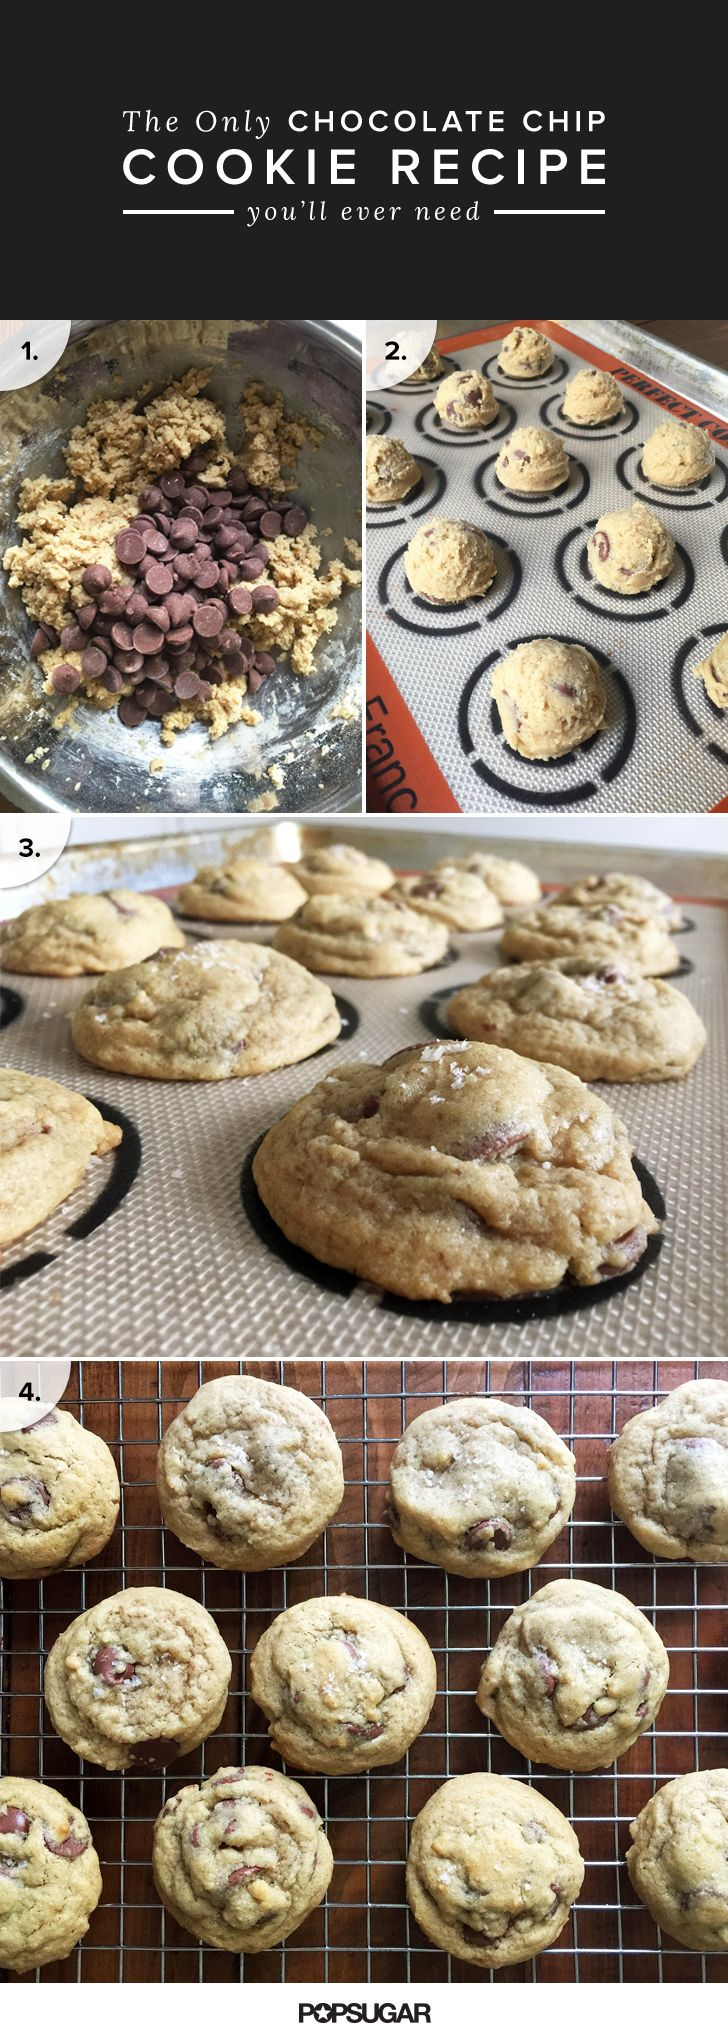 The votes are in! This is the best Chocolate Chip Cookie recipe. Try out this easy recipe with your kids. You're both bound to love it.